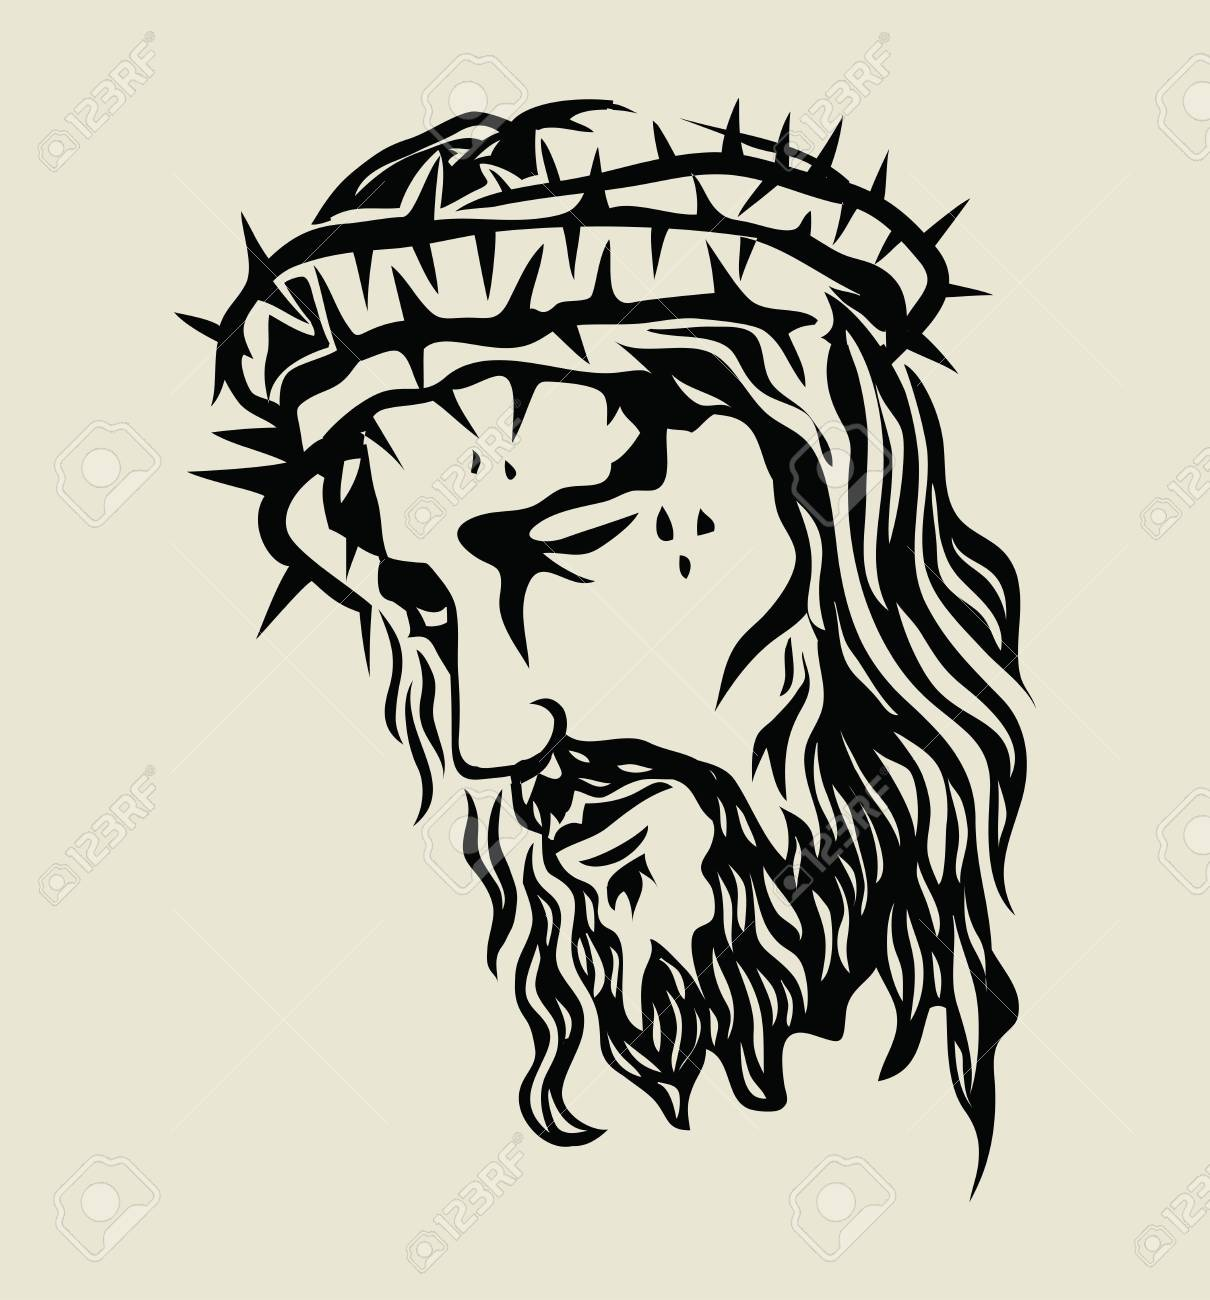 Jesus christ sketch art vector design stock vector 97692573